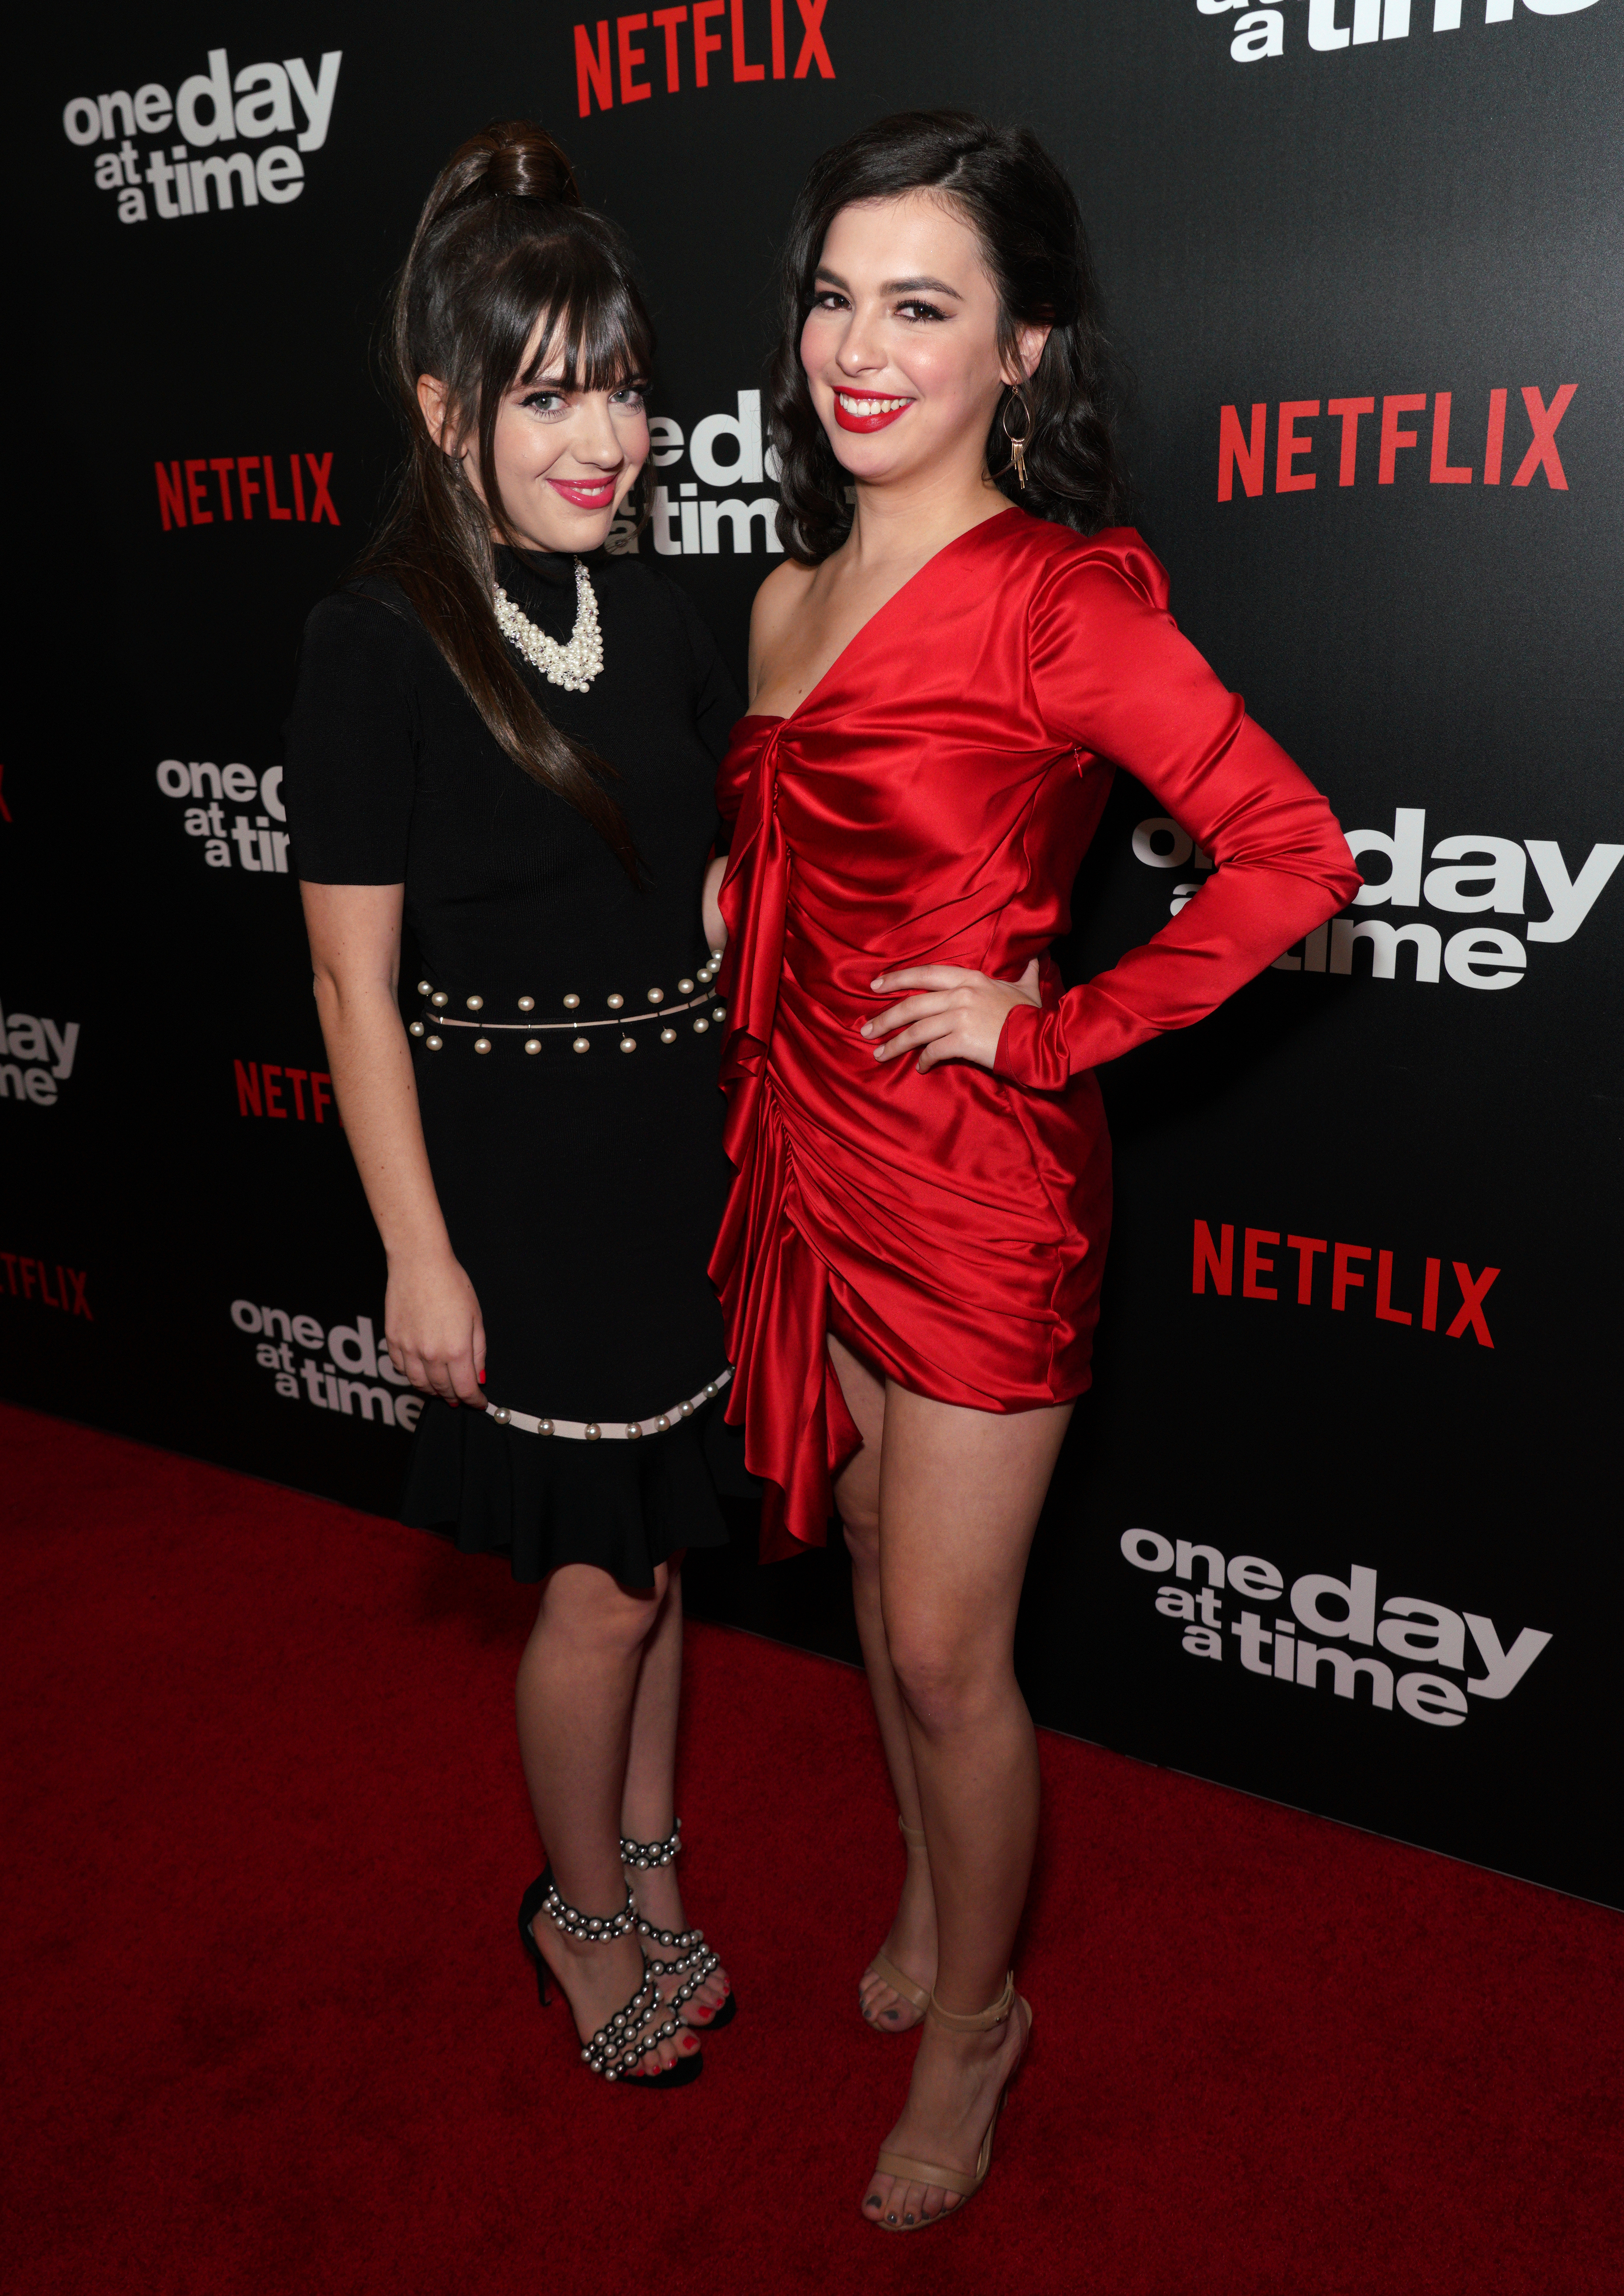 "Premiere Of Netflix's ""One Day At A Time"" Season 3 - Red Carpet"